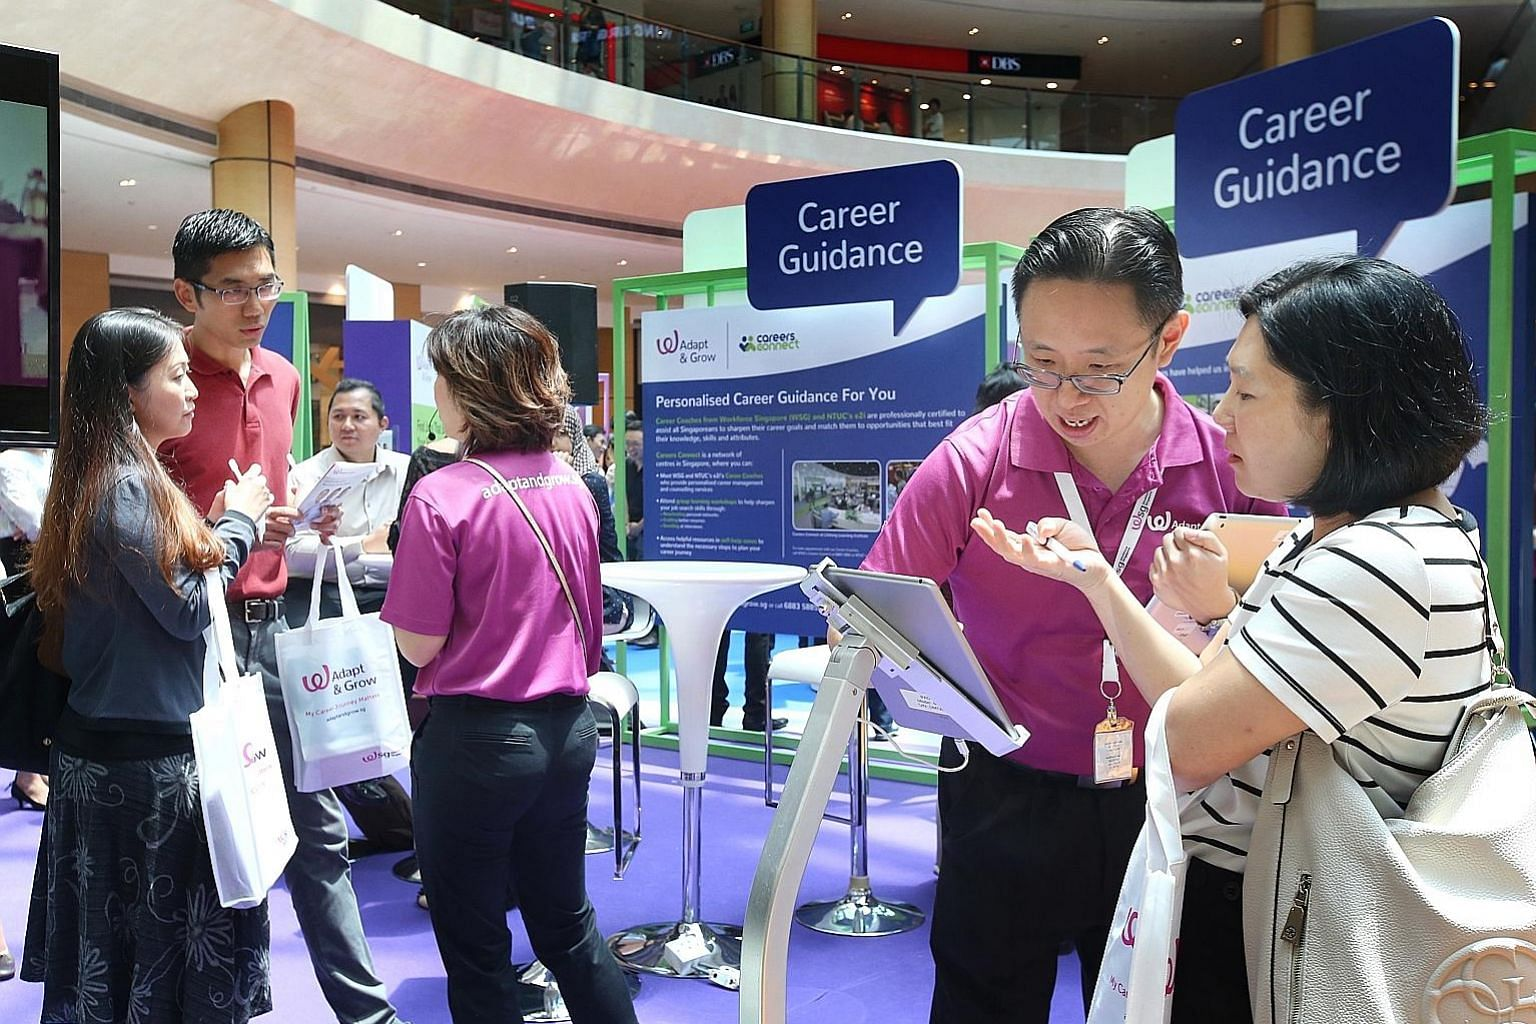 Career coaches (in purple) showing job seekers how to navigate the new MyCareersFuture.sg portal, which replaces the interface of the existing Jobs Bank for users. For now, employers will still post jobs on Jobs Bank, and the posts will be shown on t